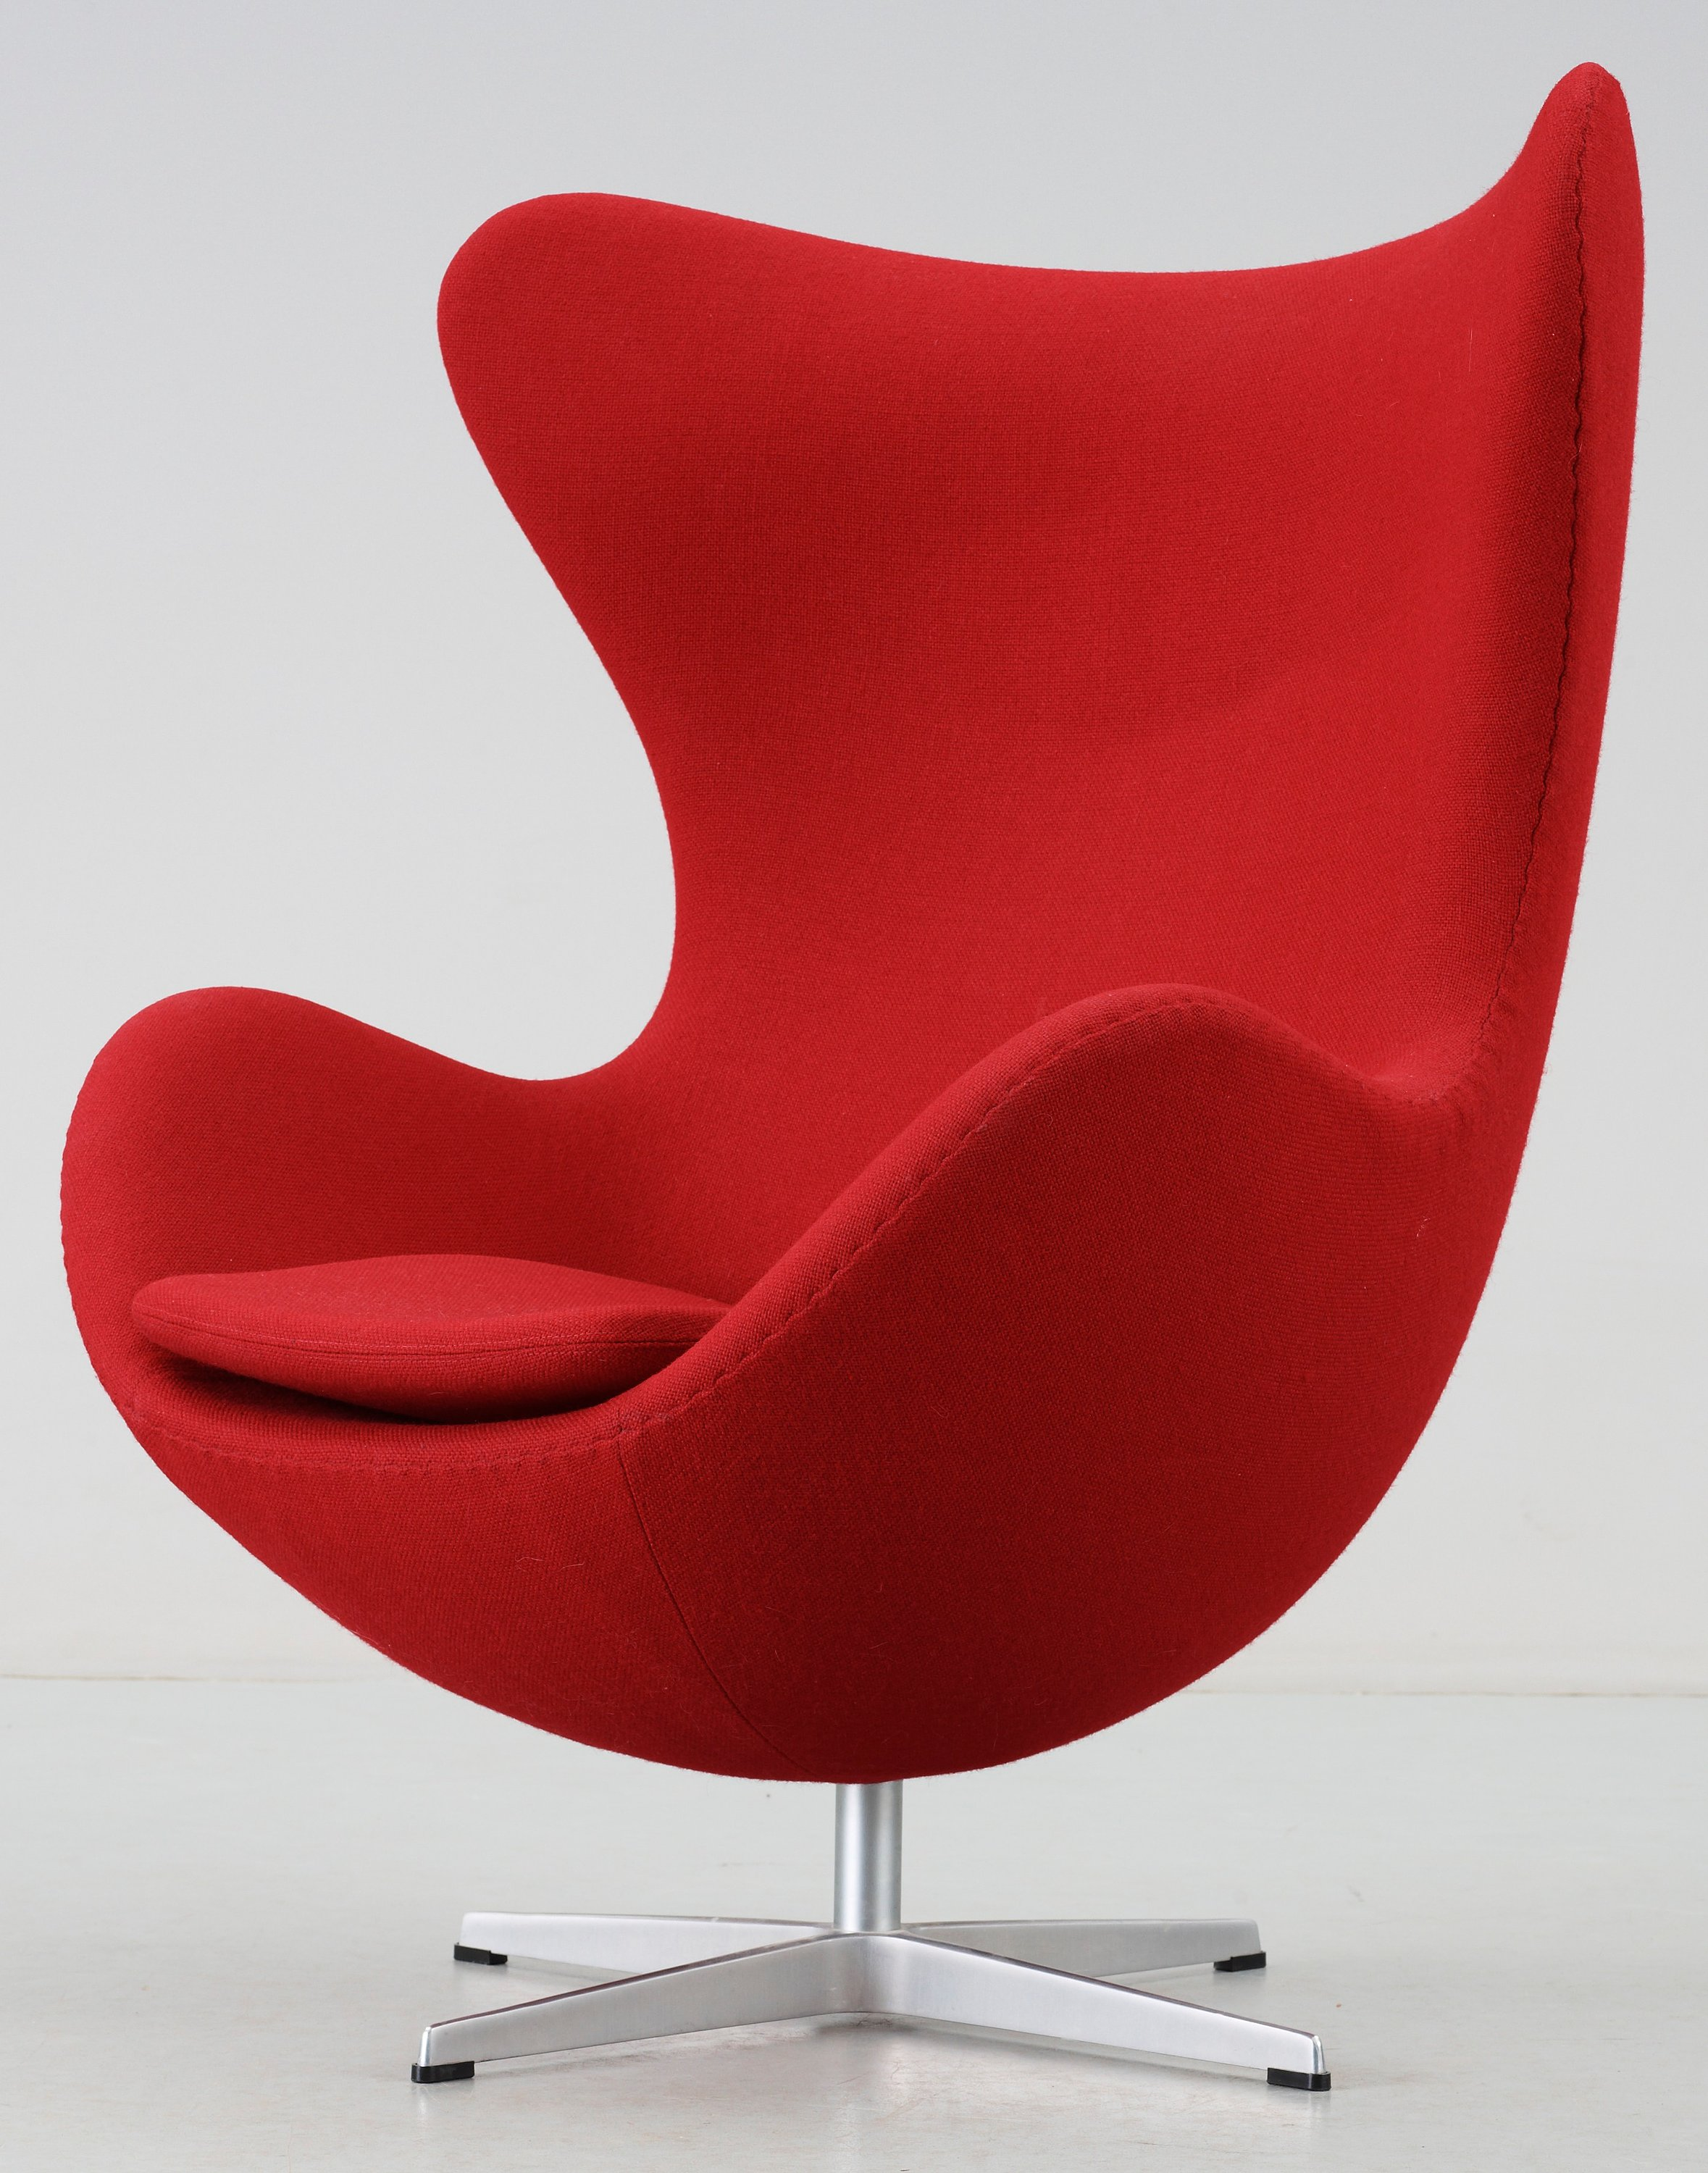 An Arne Jacobsen Egg Chair Fritz Hansen Denmark 1998 Upholstered In Red Fabric Bukowskis